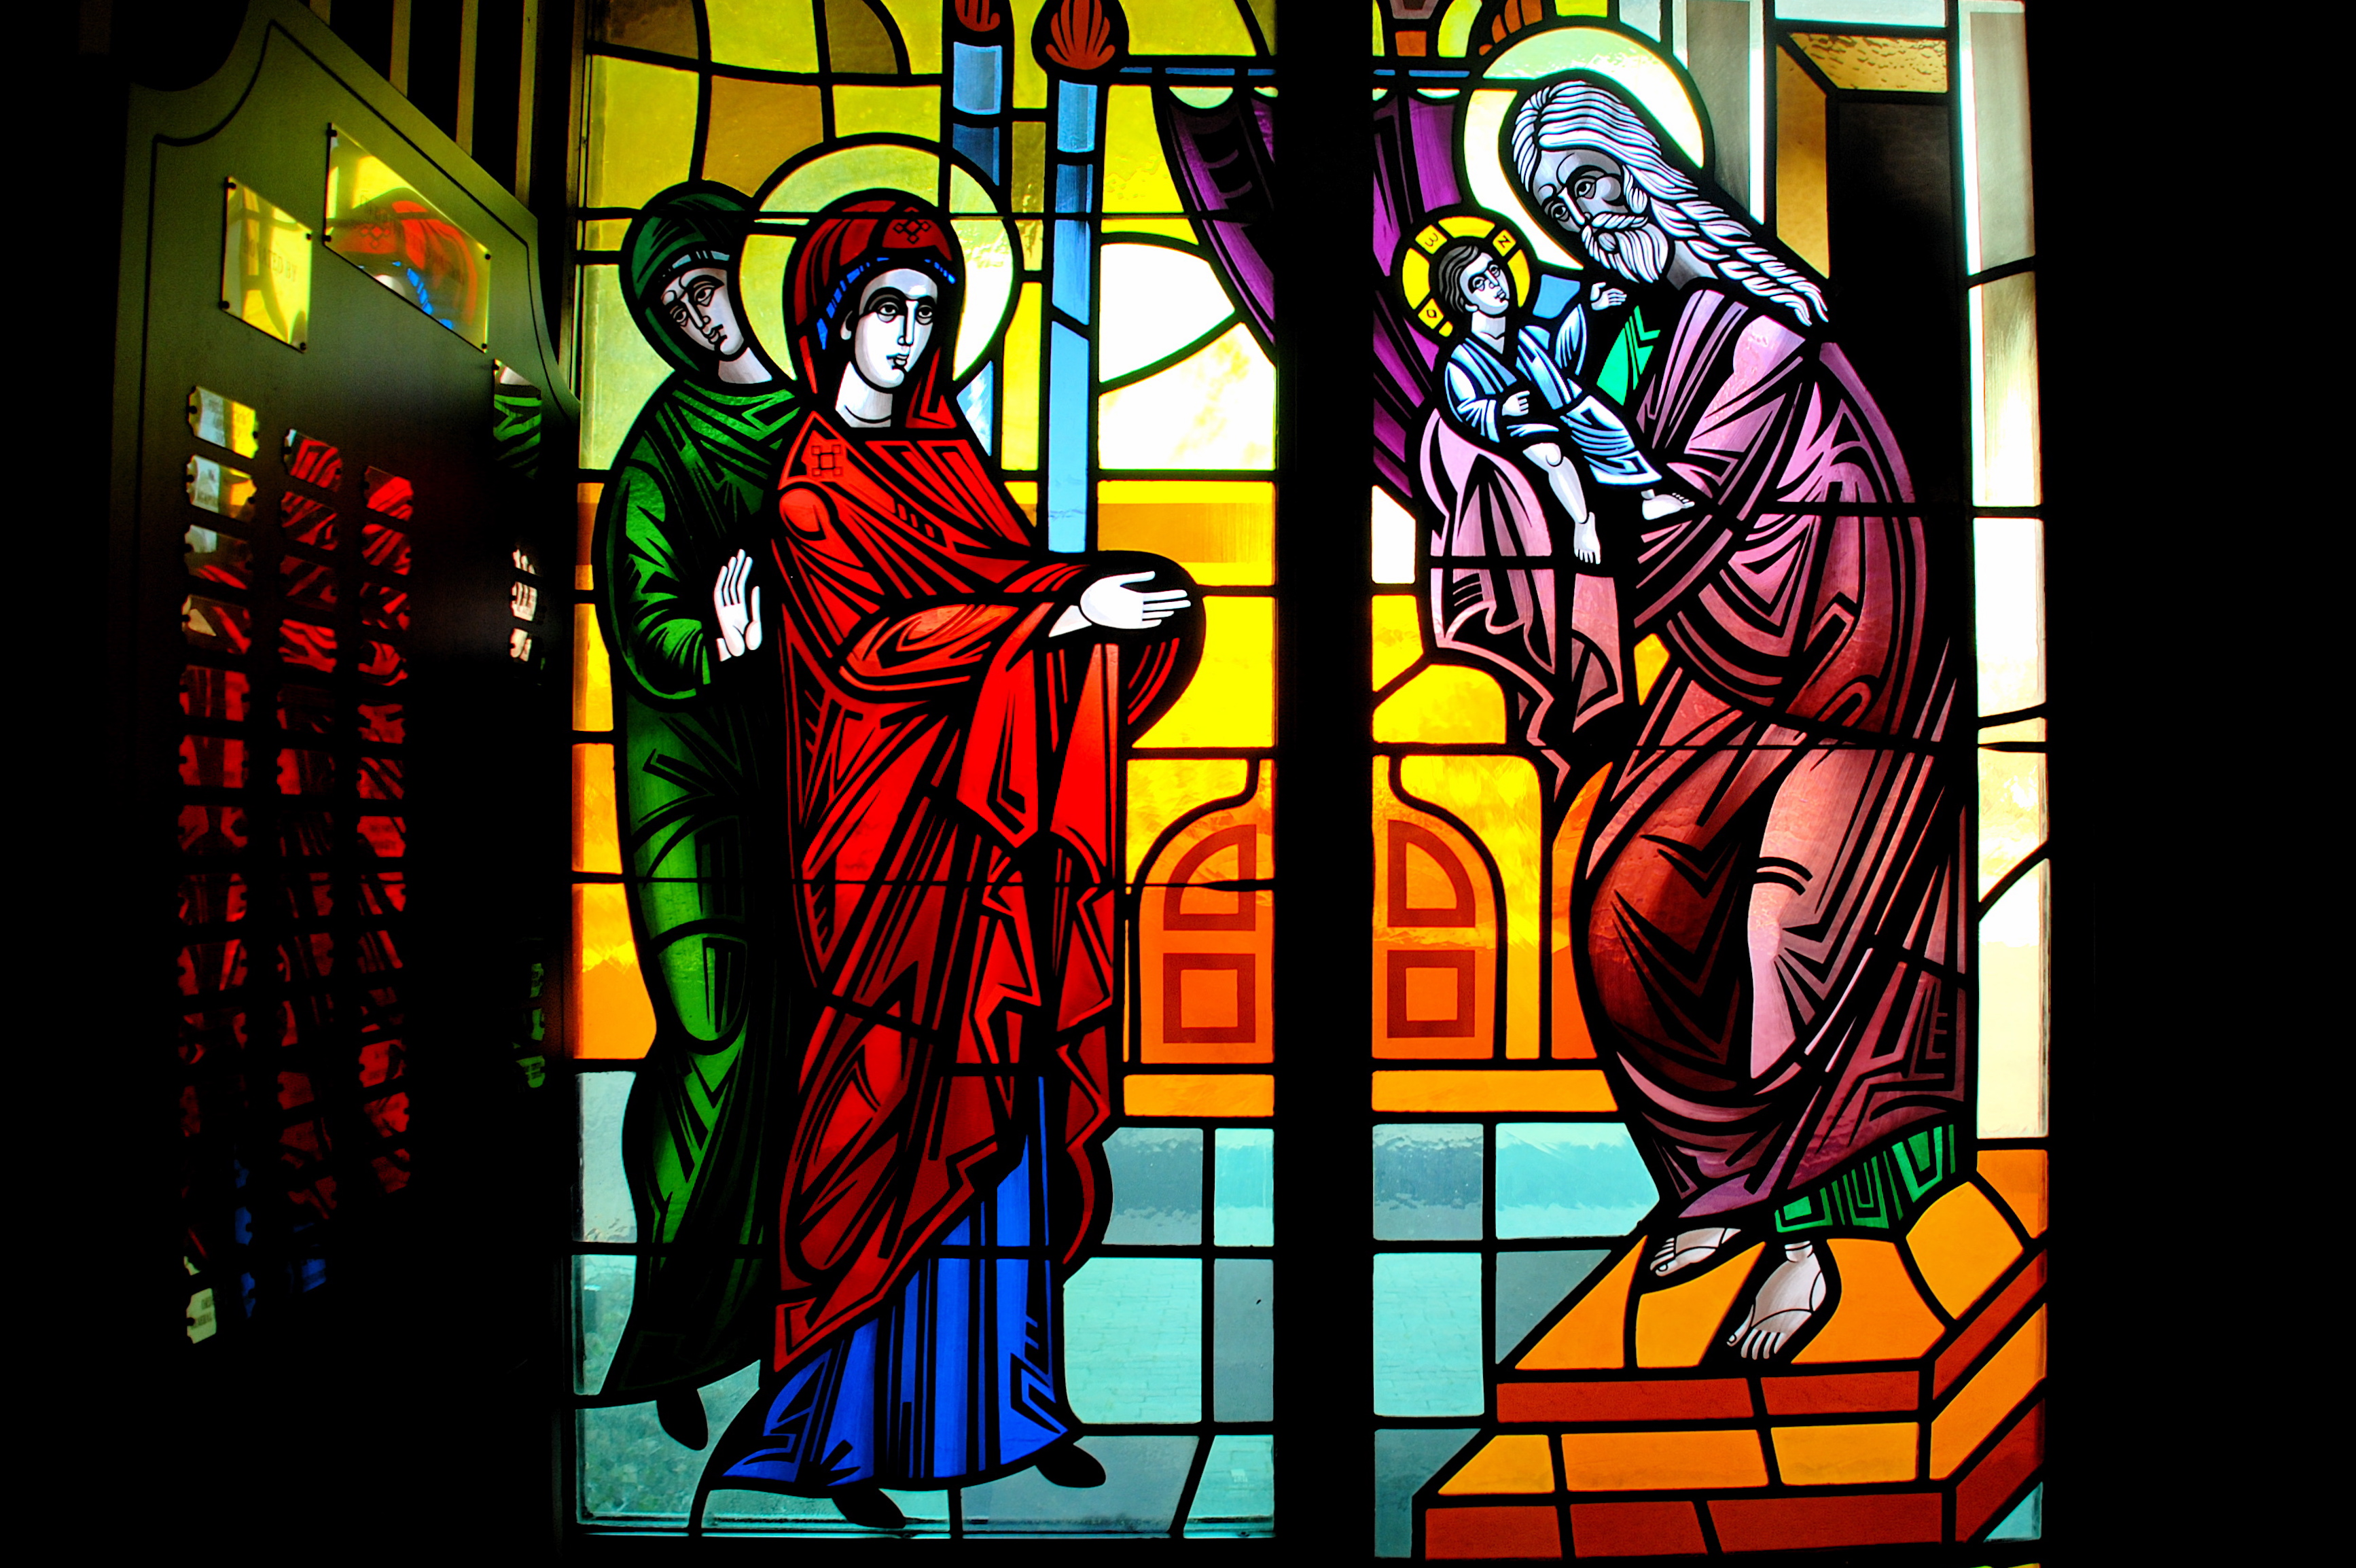 Stained glass windows charlotte nc images for Narrow windows for sale